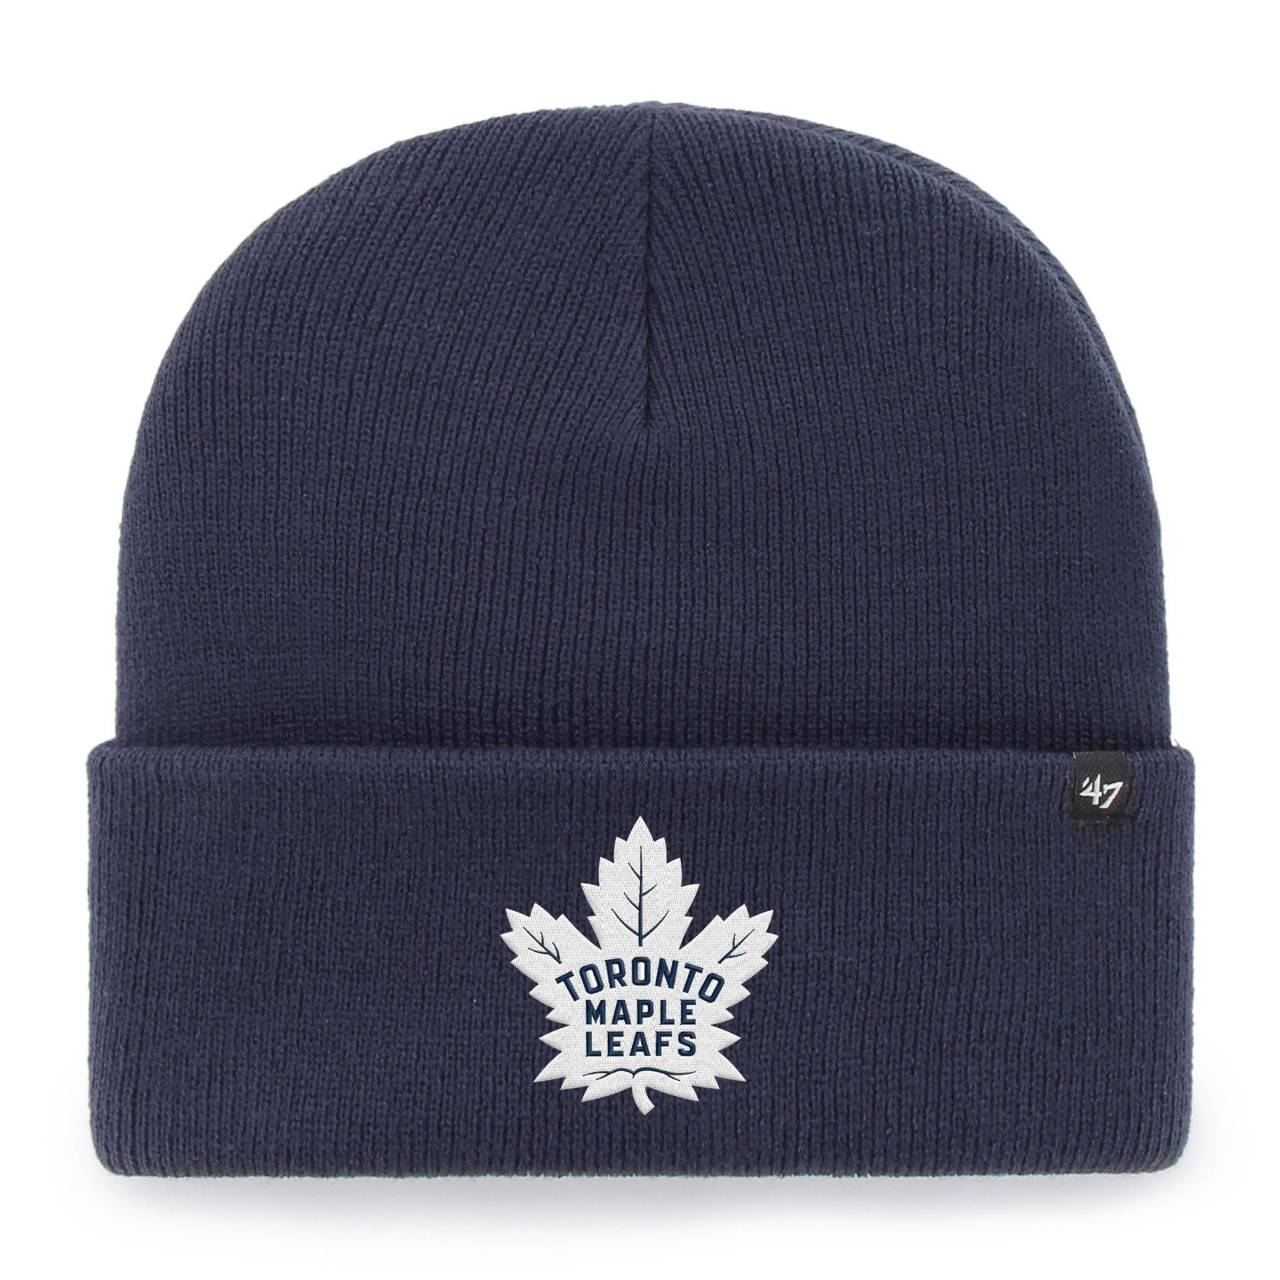 NHL TORONTO MAPLE LEAFS HYAMAKER ´47 CUFF KNIT NAVY